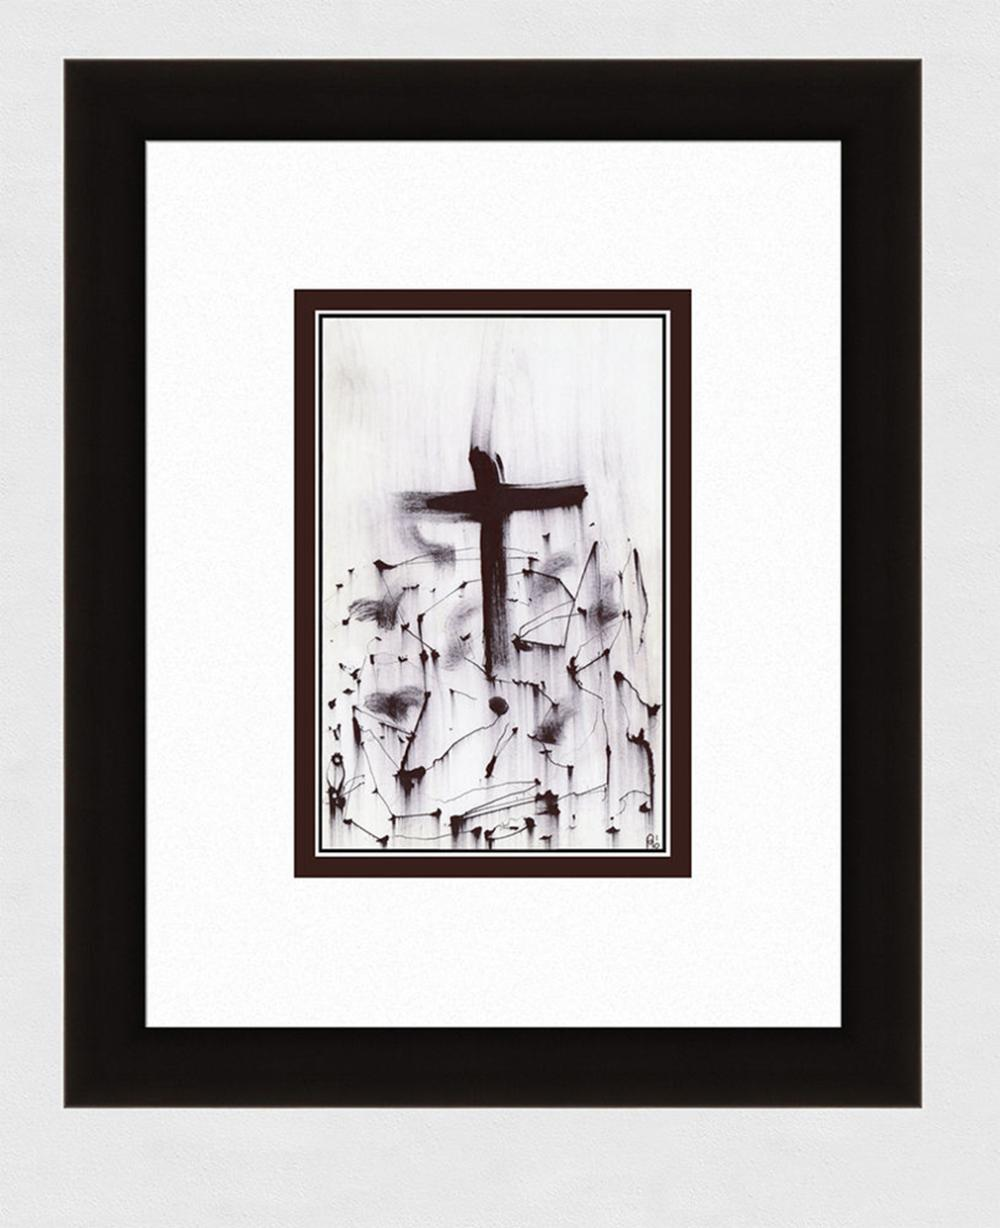 Patrick Mcdowell Crucifixion #7 Ink on paper signed